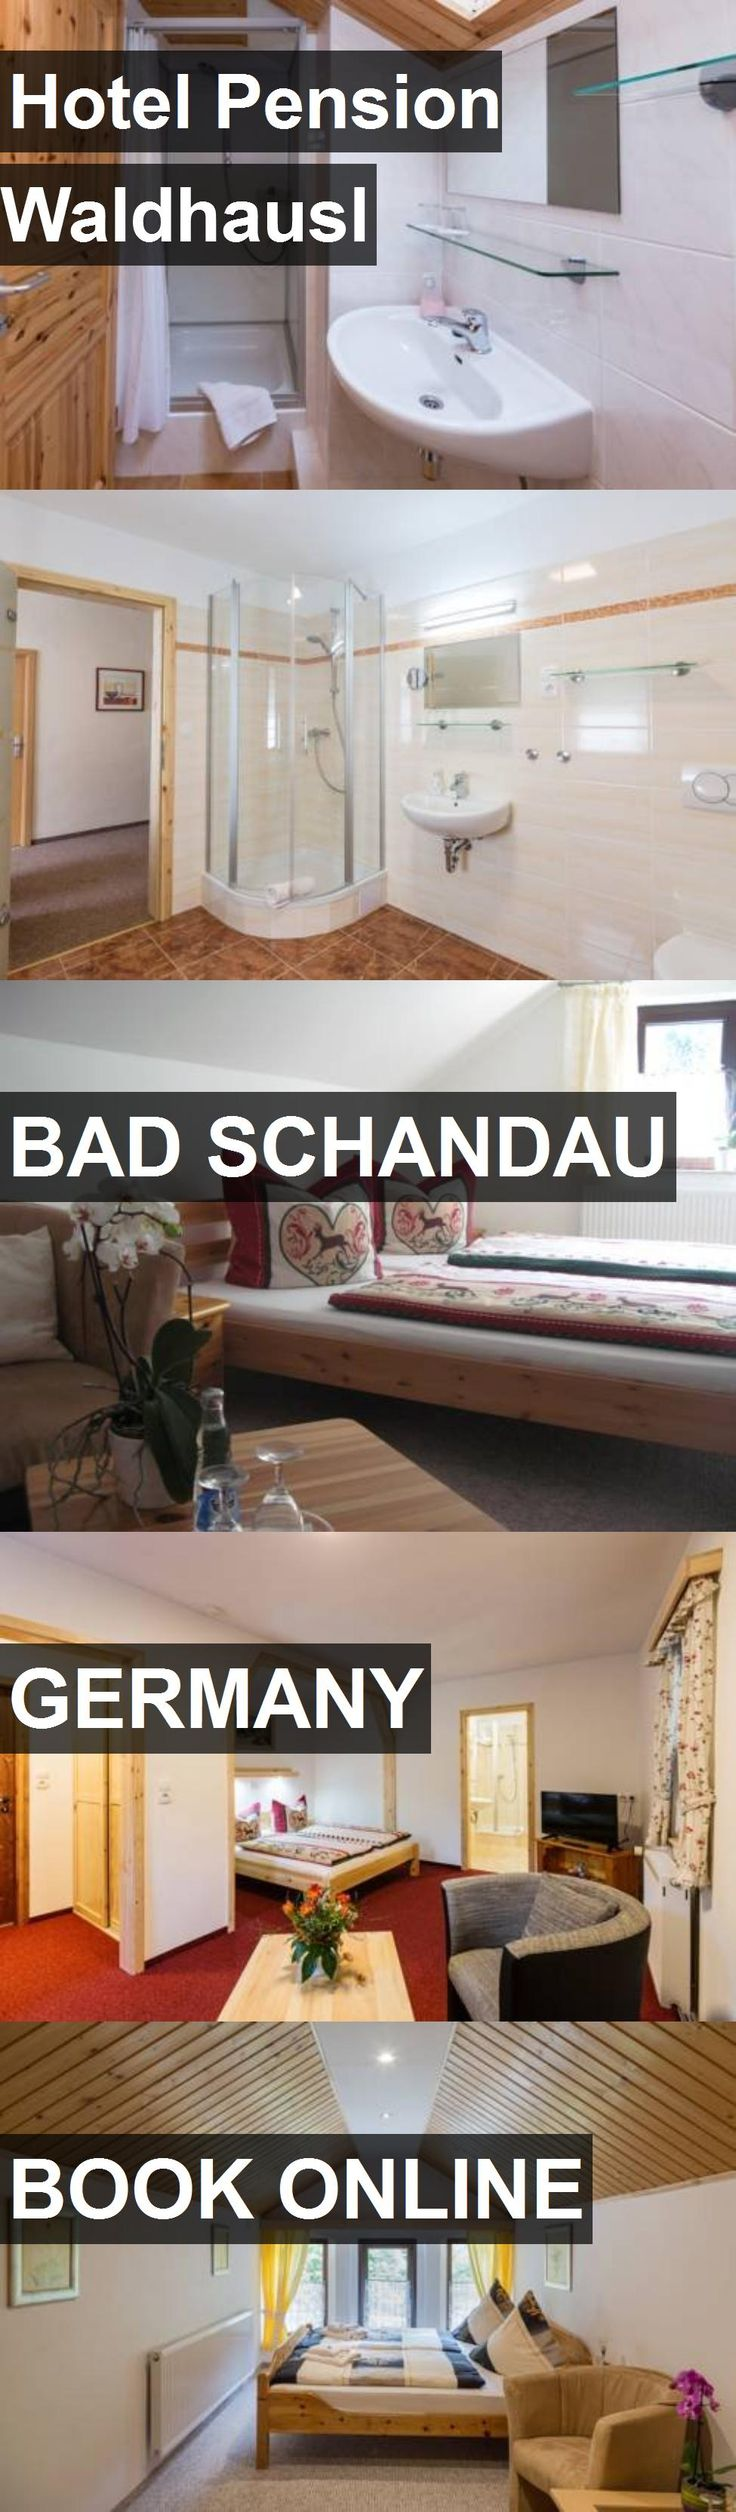 32 best hotel bad images on Pinterest | Bathroom, Bathrooms and ...